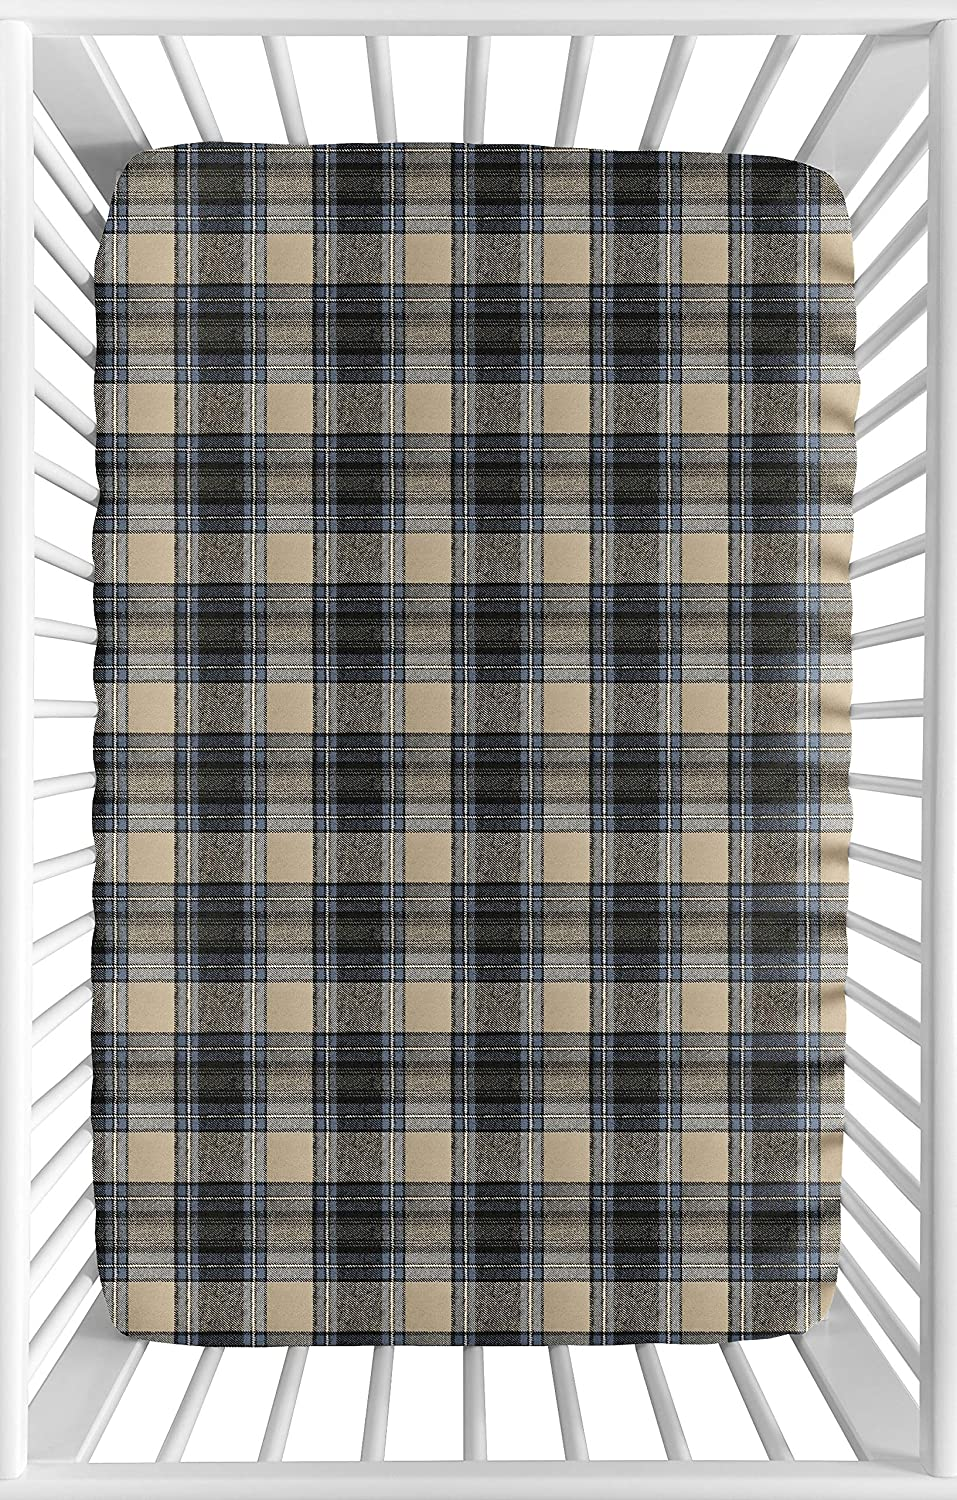 Amazon Com Sweet Jojo Designs Blue And Tan Woodland Plaid Flannel Baby Boy Fitted Mini Portable Crib Sheet For Rustic Patch Collection For Mini Crib Or Pack And Play Only Baby